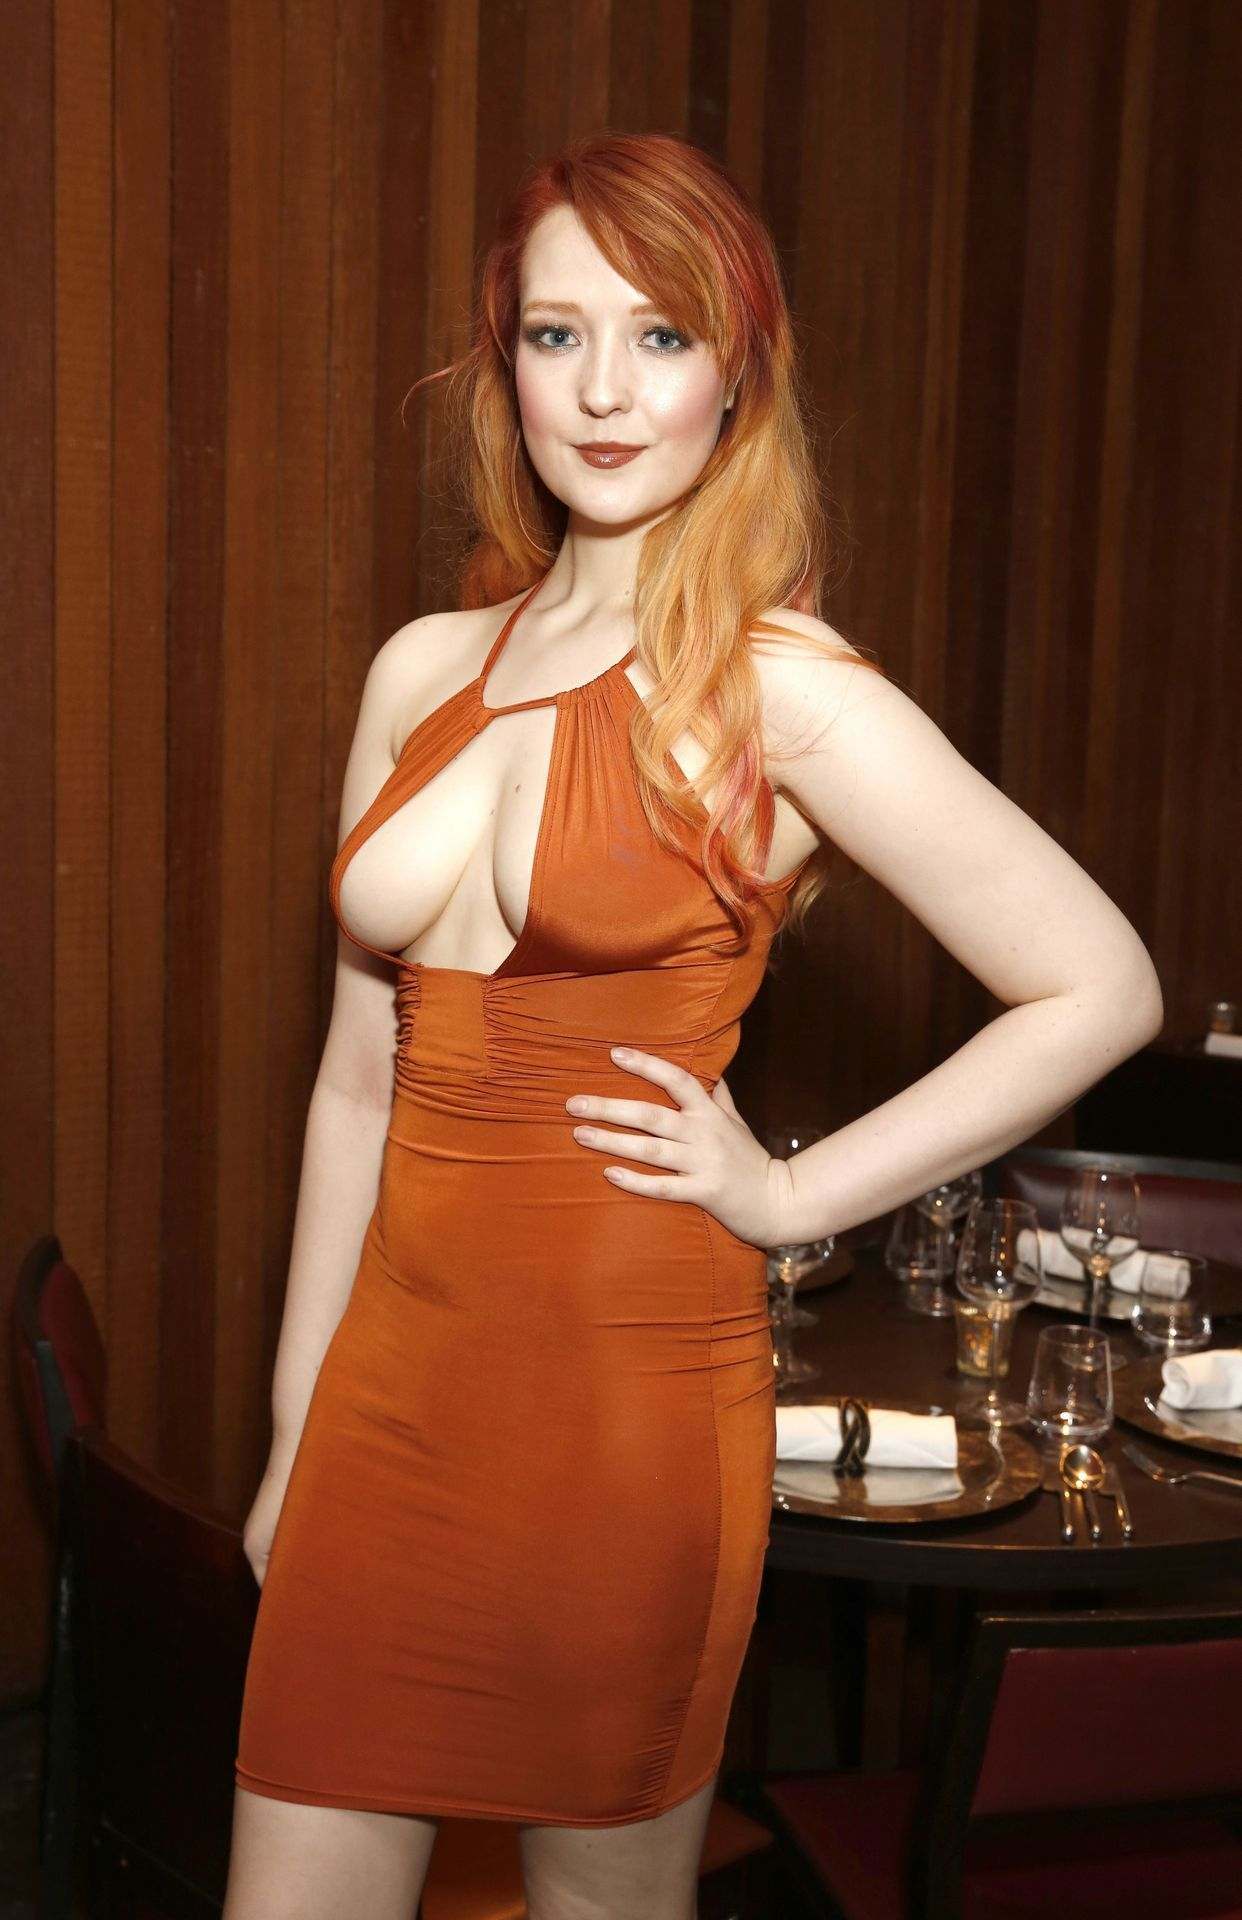 Red hot redheads | Tight dresses, Dresses, Fashion